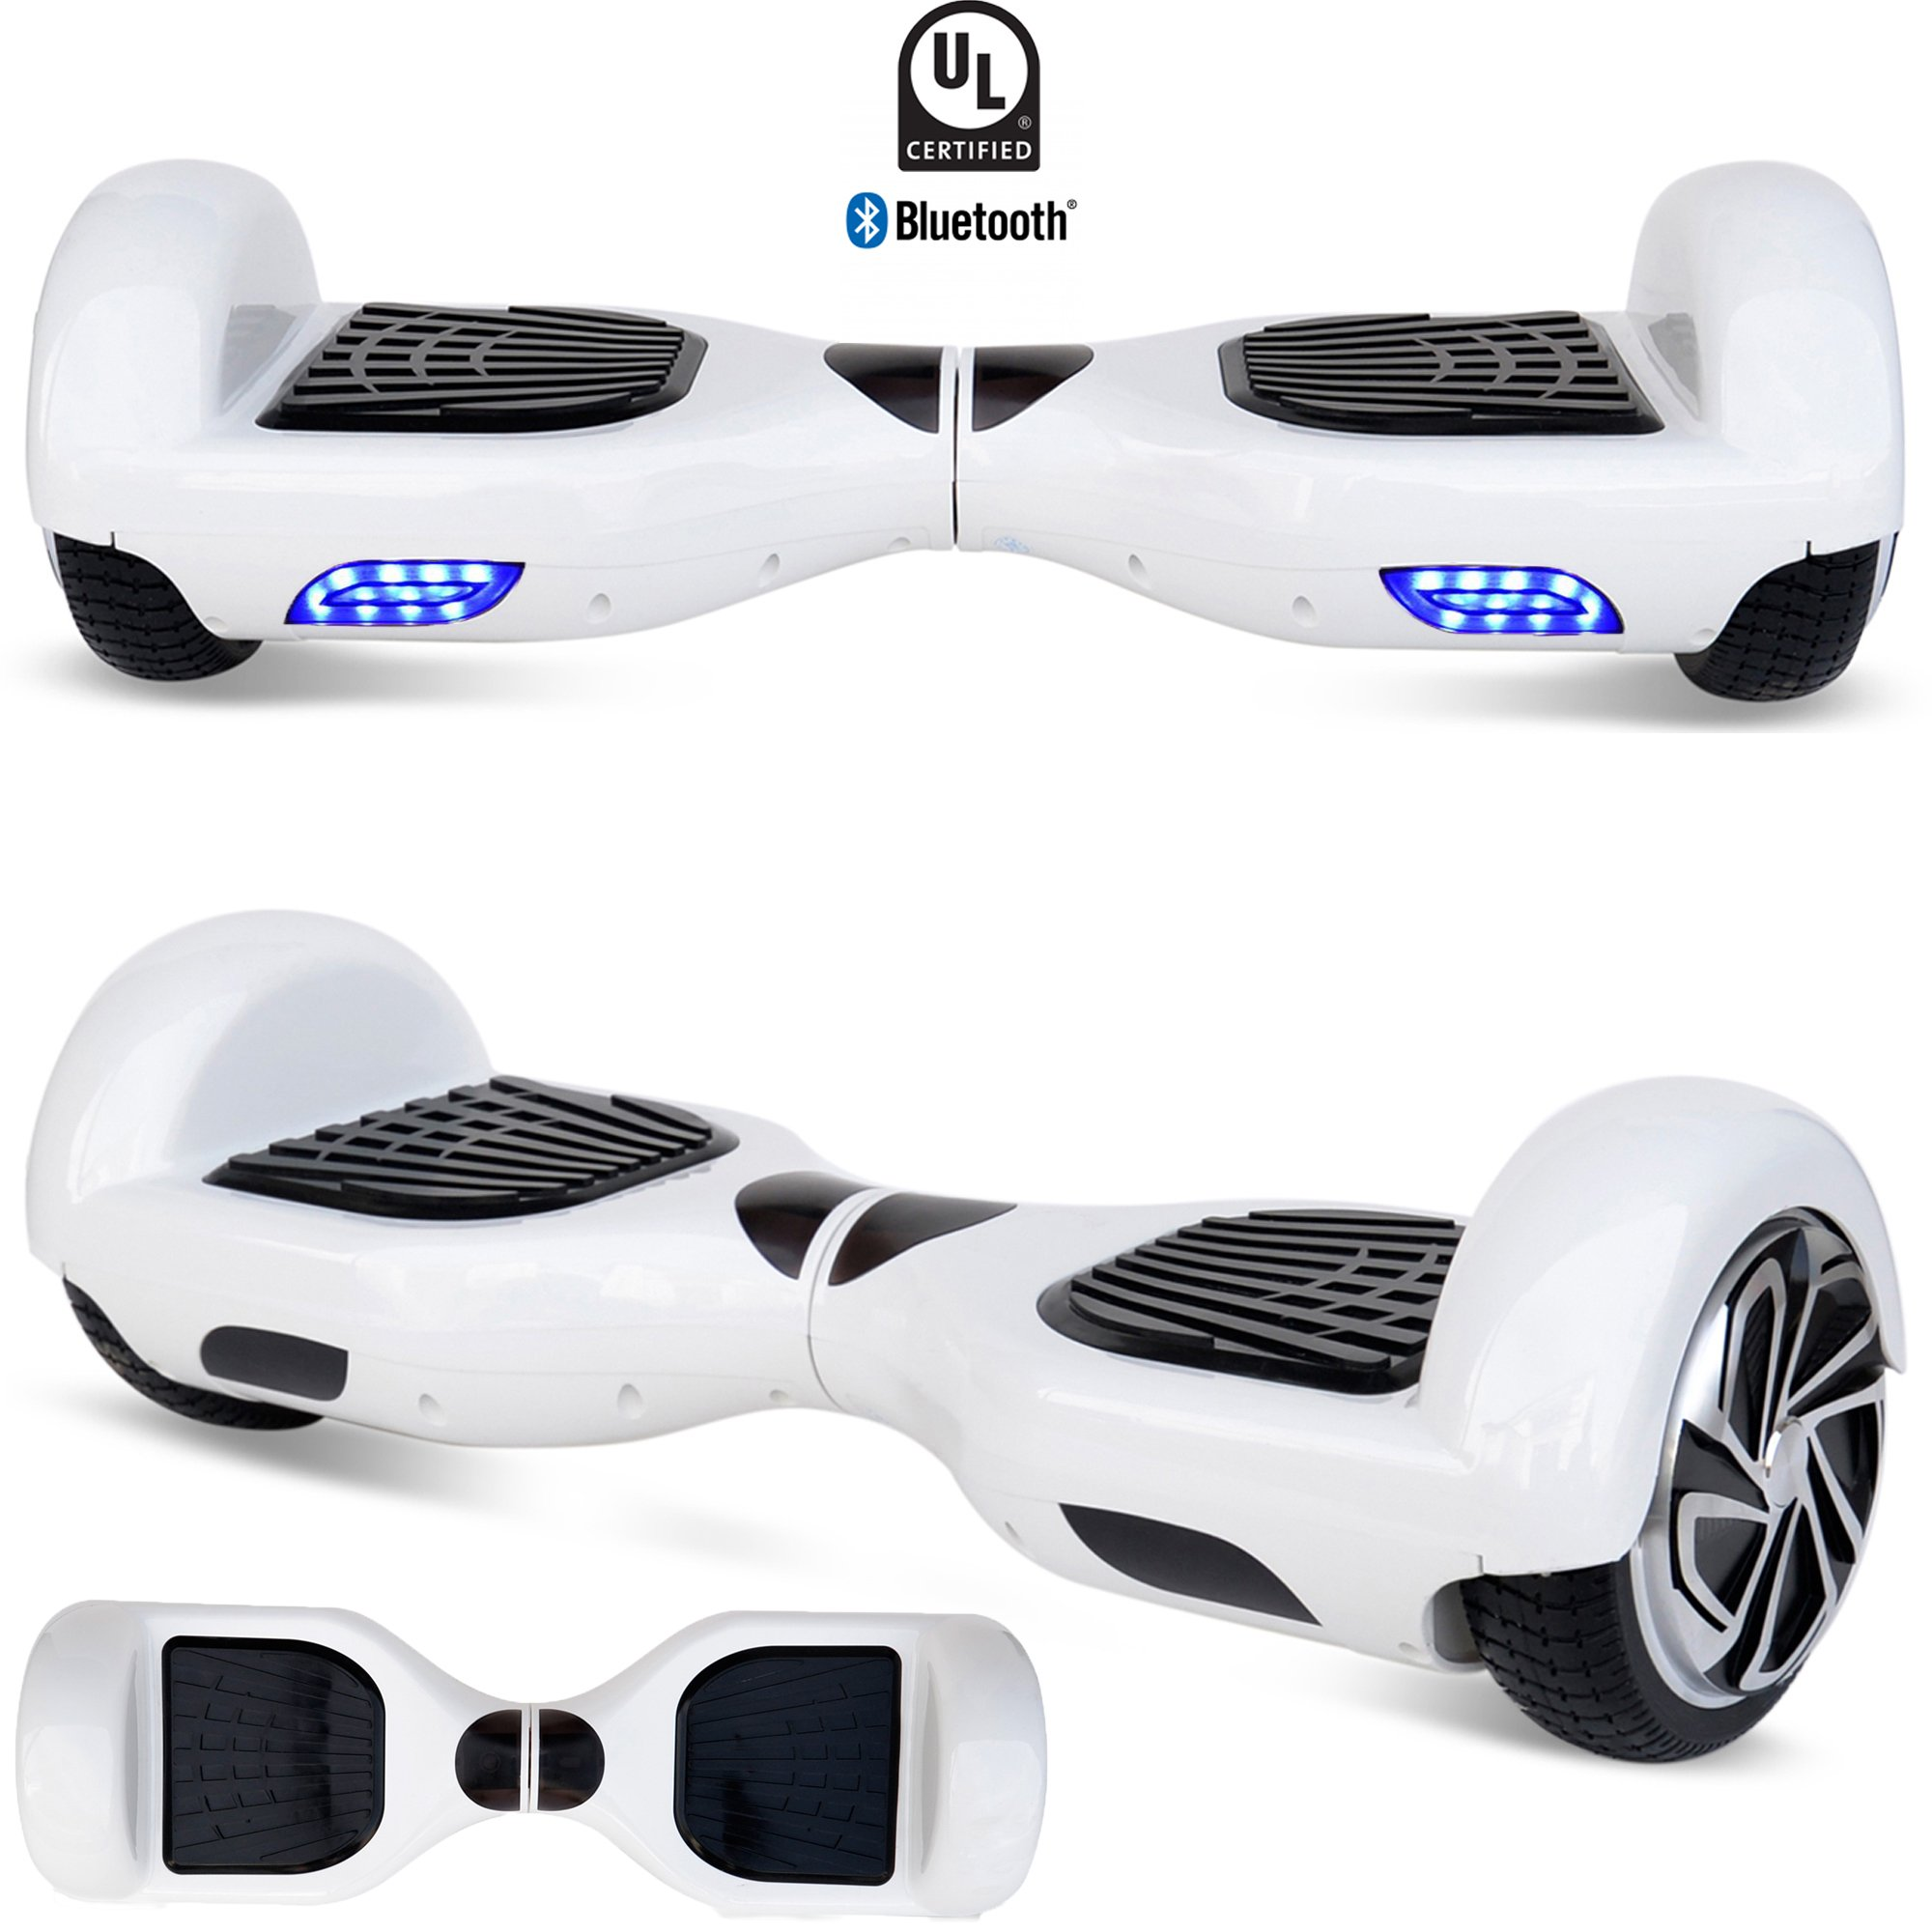 6.5'' HoverBoard Electric Scooter Smart Self-Balancing Wheels Hover Board With Built-in Bluetooth Speaker UL2272 Certified (White)